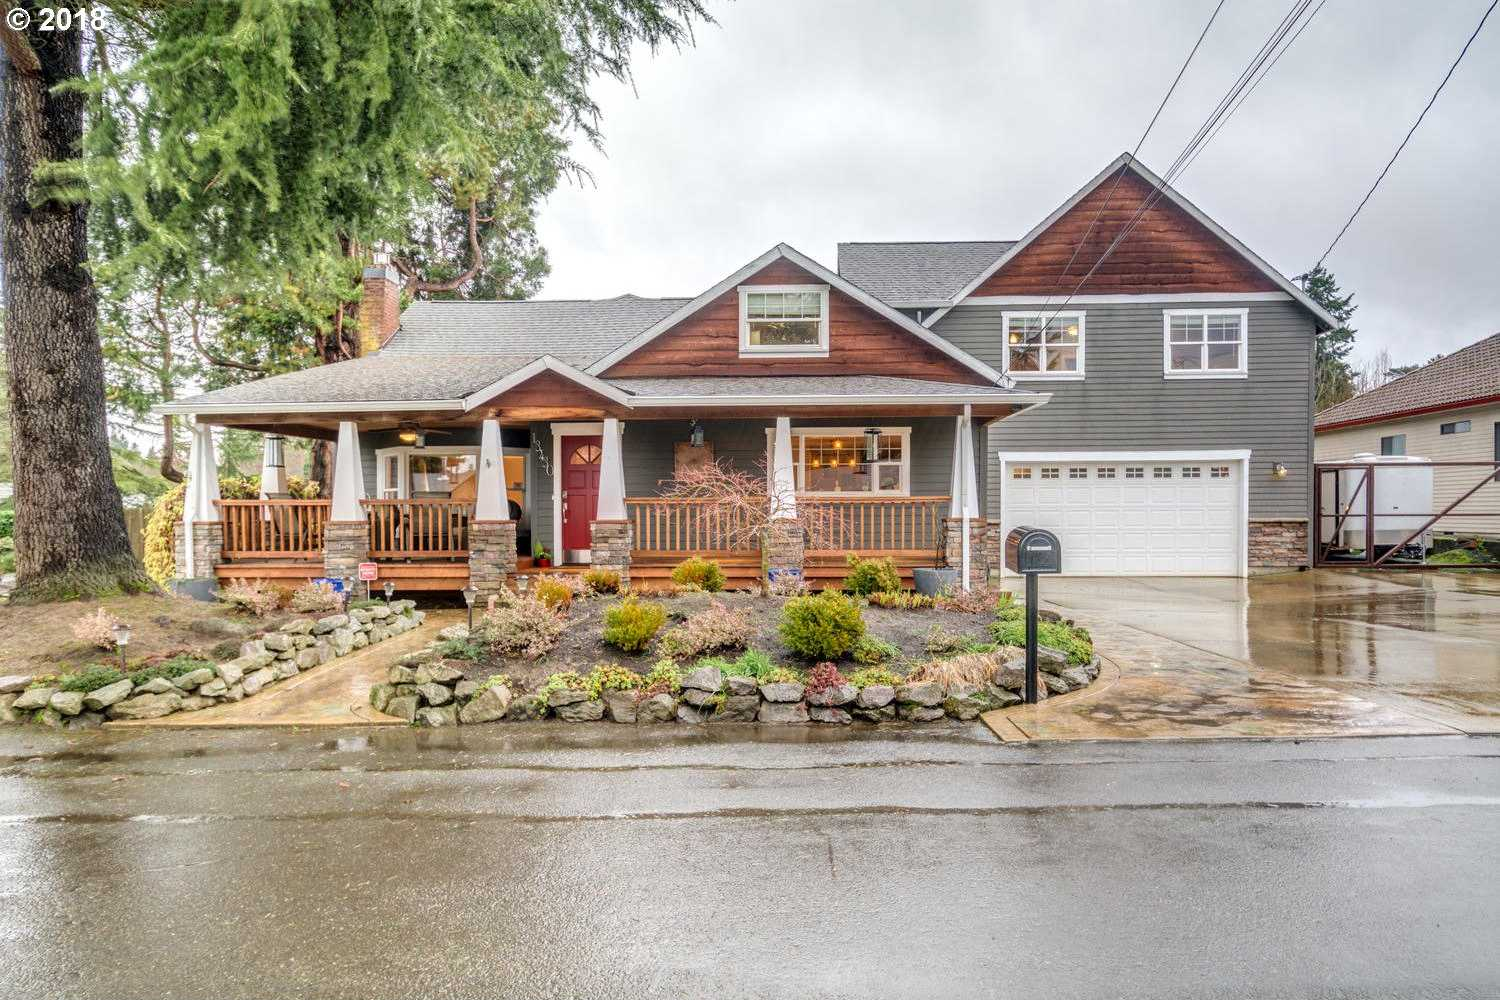 $599,000 - 5Br/3Ba -  for Sale in Bull Mountain, Tigard